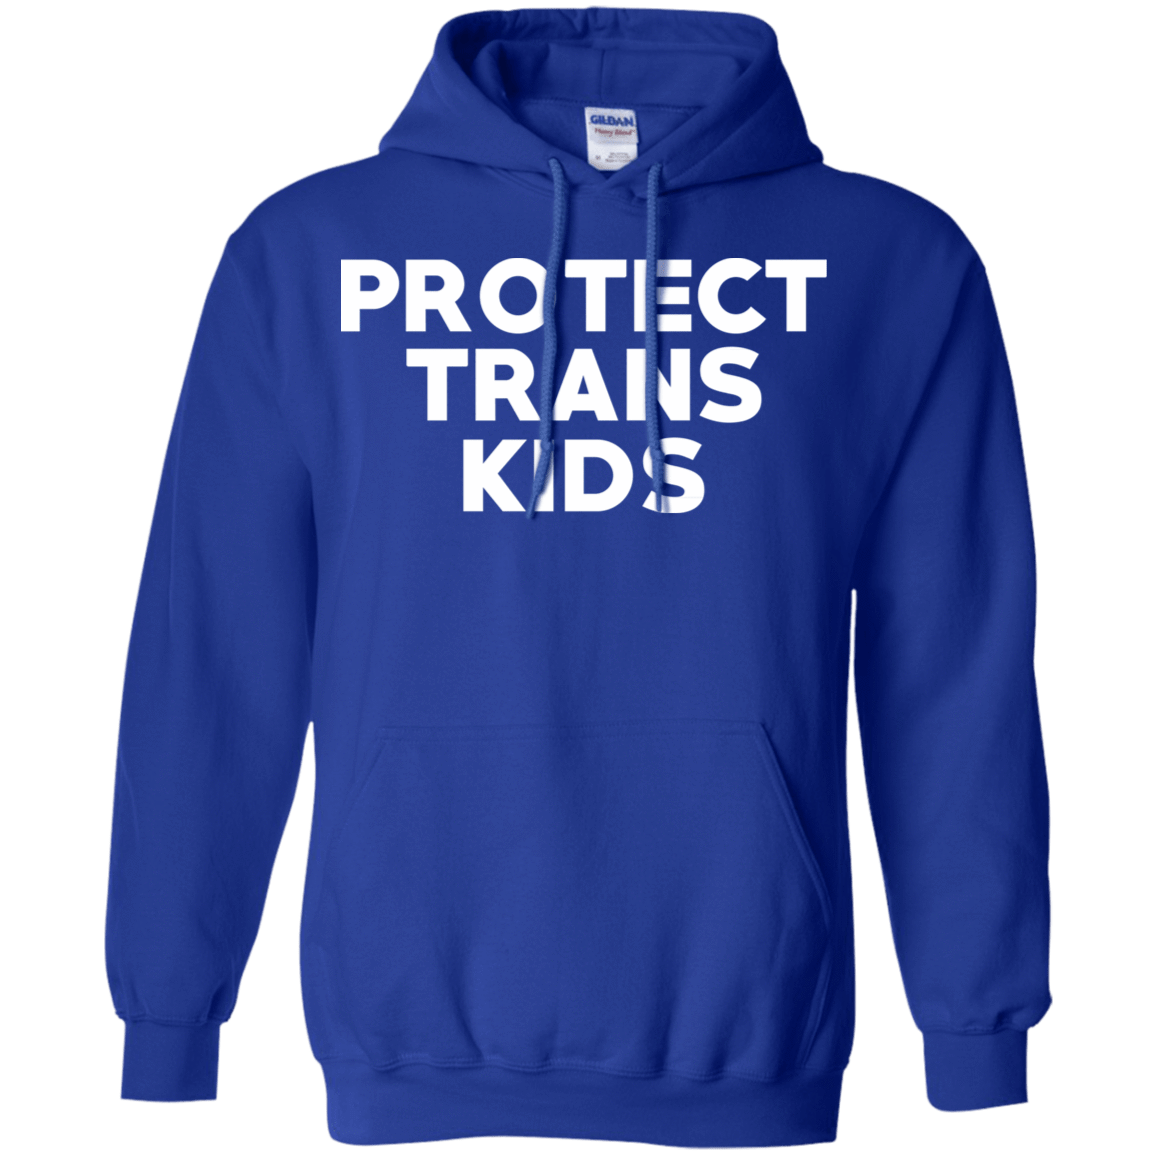 Protect Trans Kids 541-4765-73563072-23175 - Tee Ript